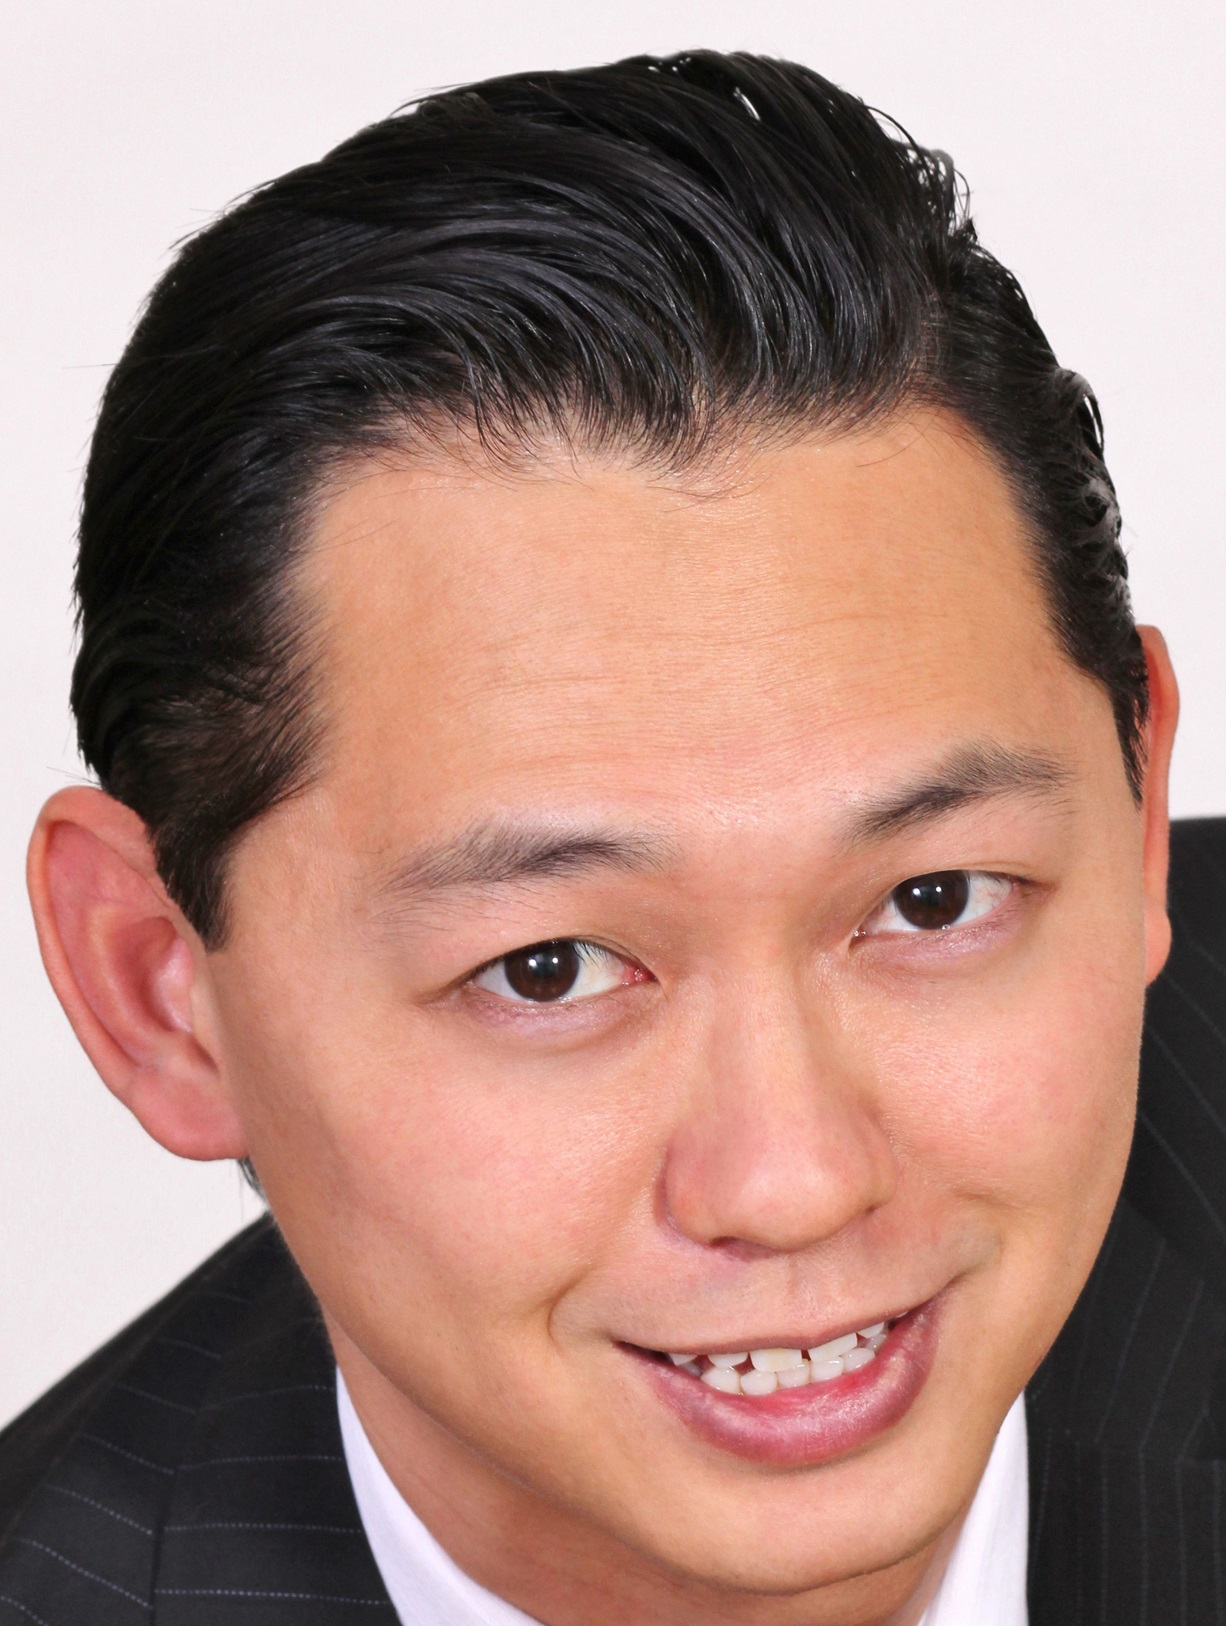 Dr. Jerry Lai, MD